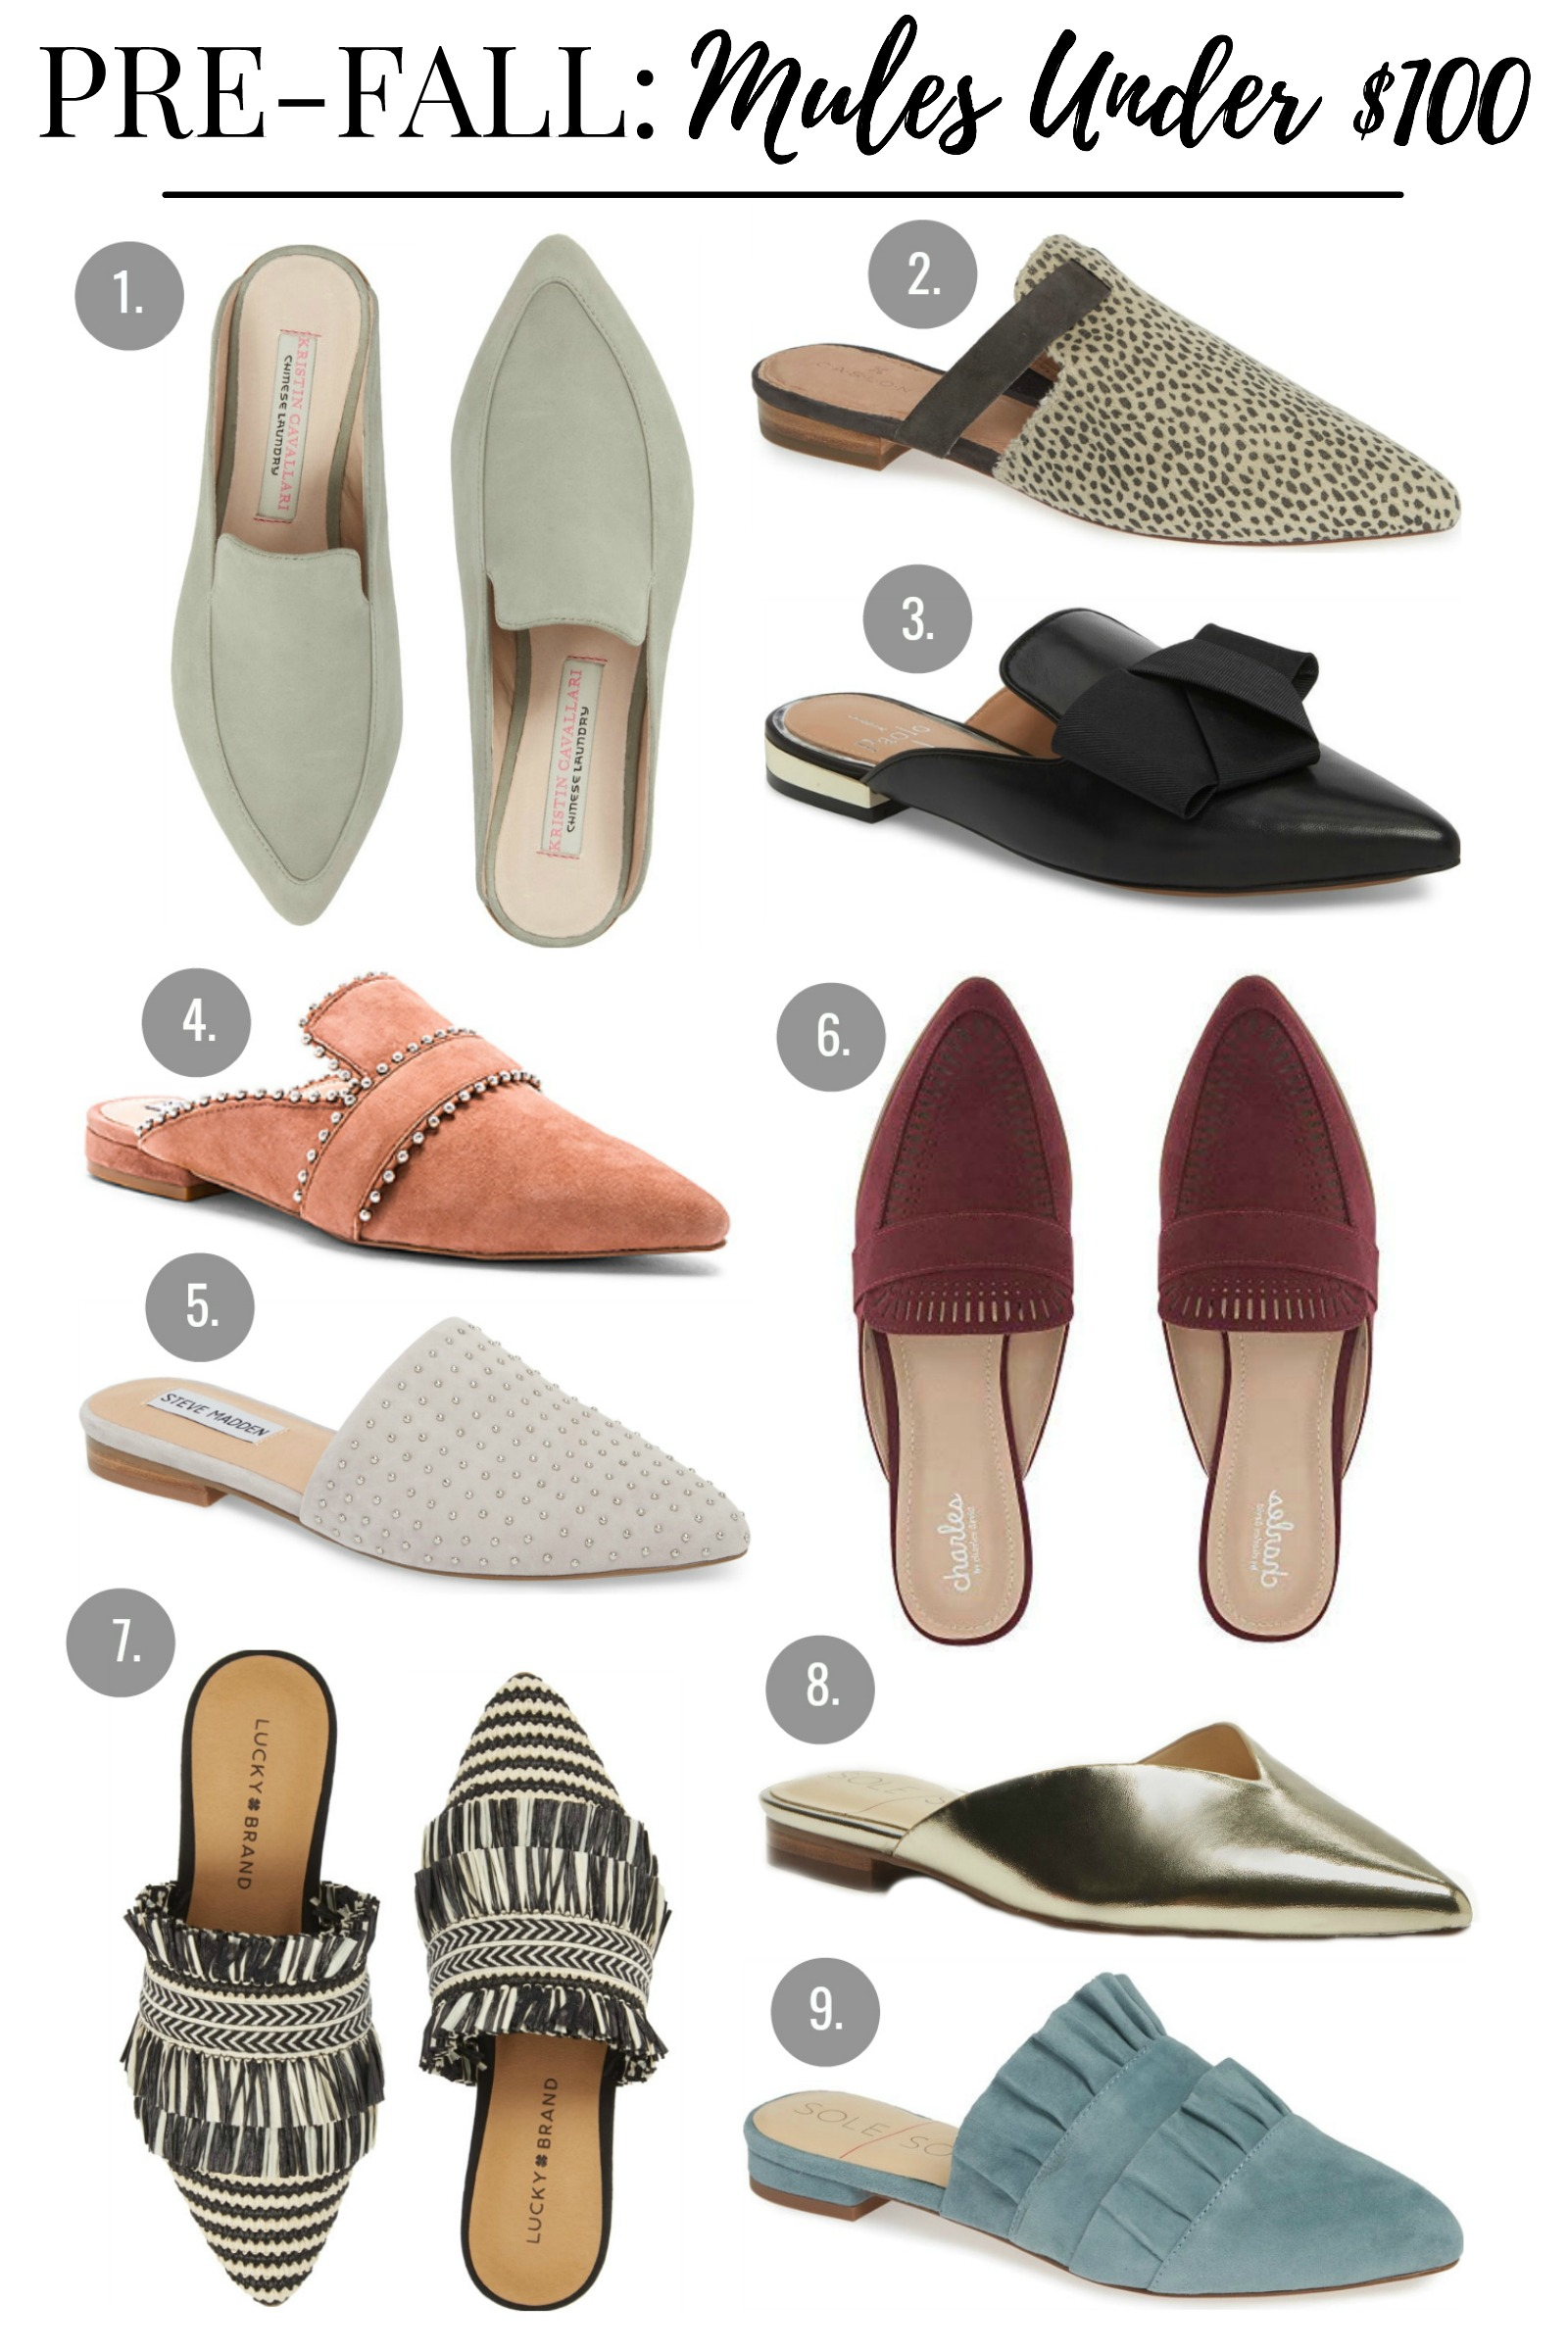 fall mules under 100